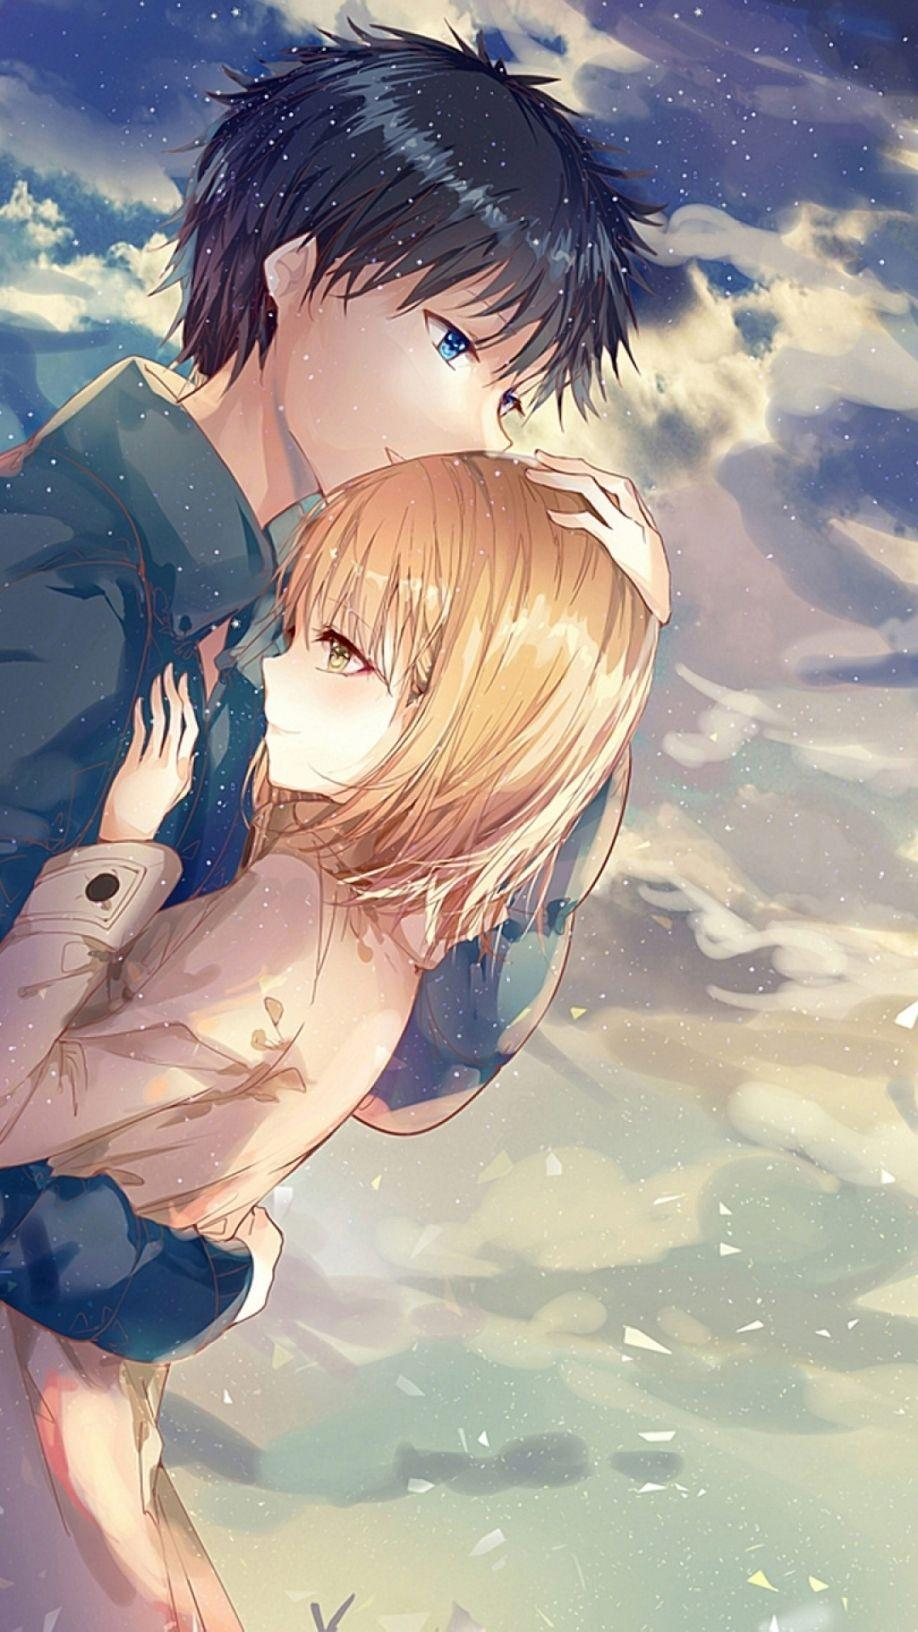 Download 95 Wallpaper Anime Couple Hd Android HD Paling Keren